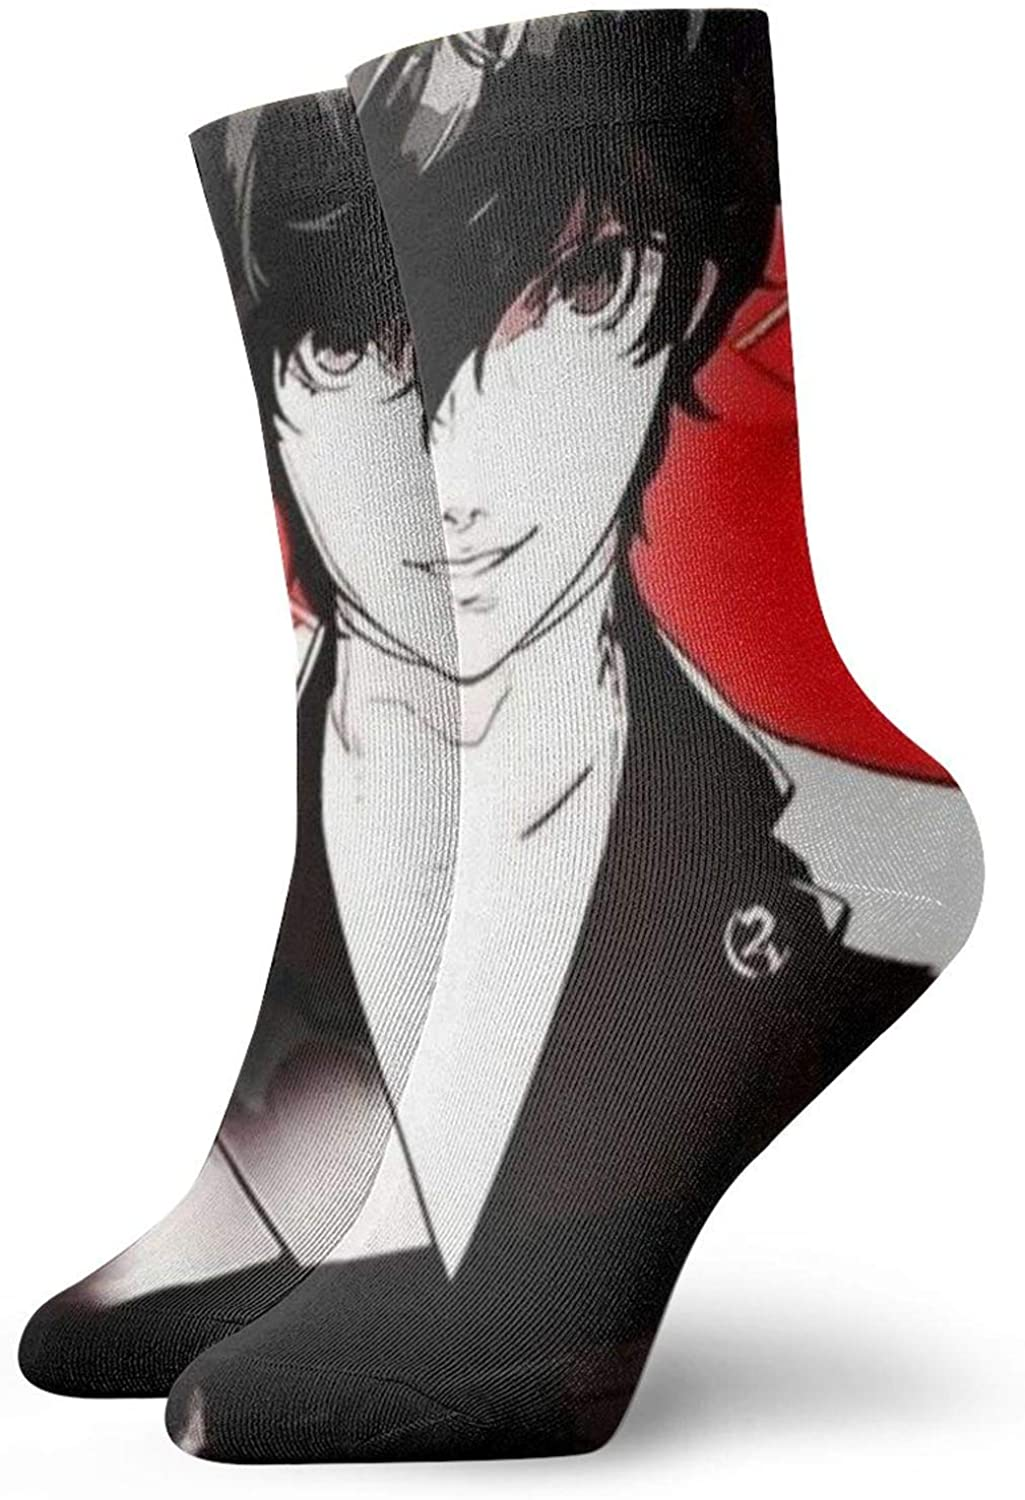 Unisex Adult Persona 5 3D anime sweat-absorbent deodorant sports stockings Novelty Casual funny sock